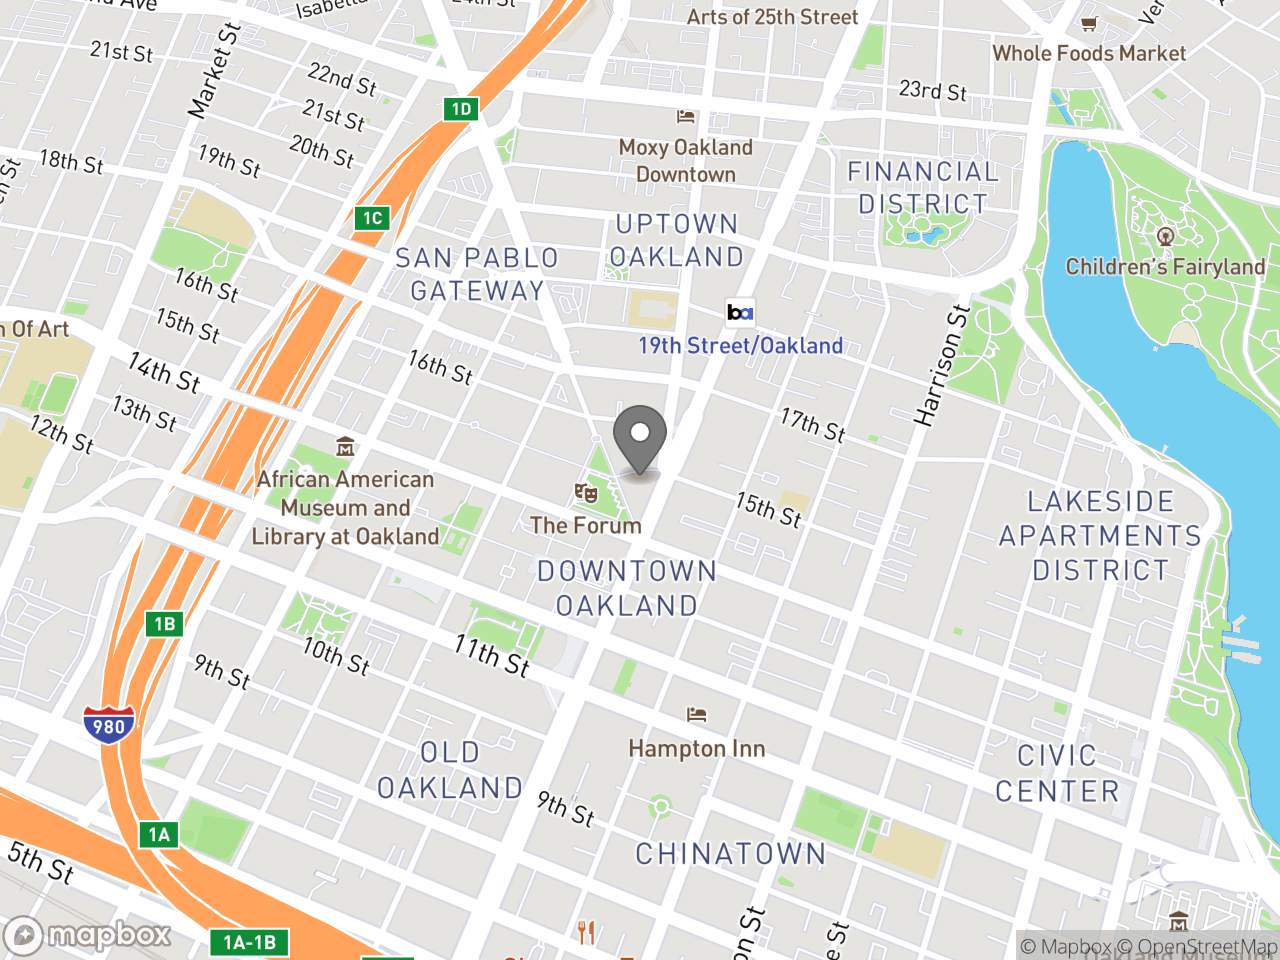 Map location for Human Resources Management, located at 150 Frank H Ogawa Plaza in Oakland, CA 94612